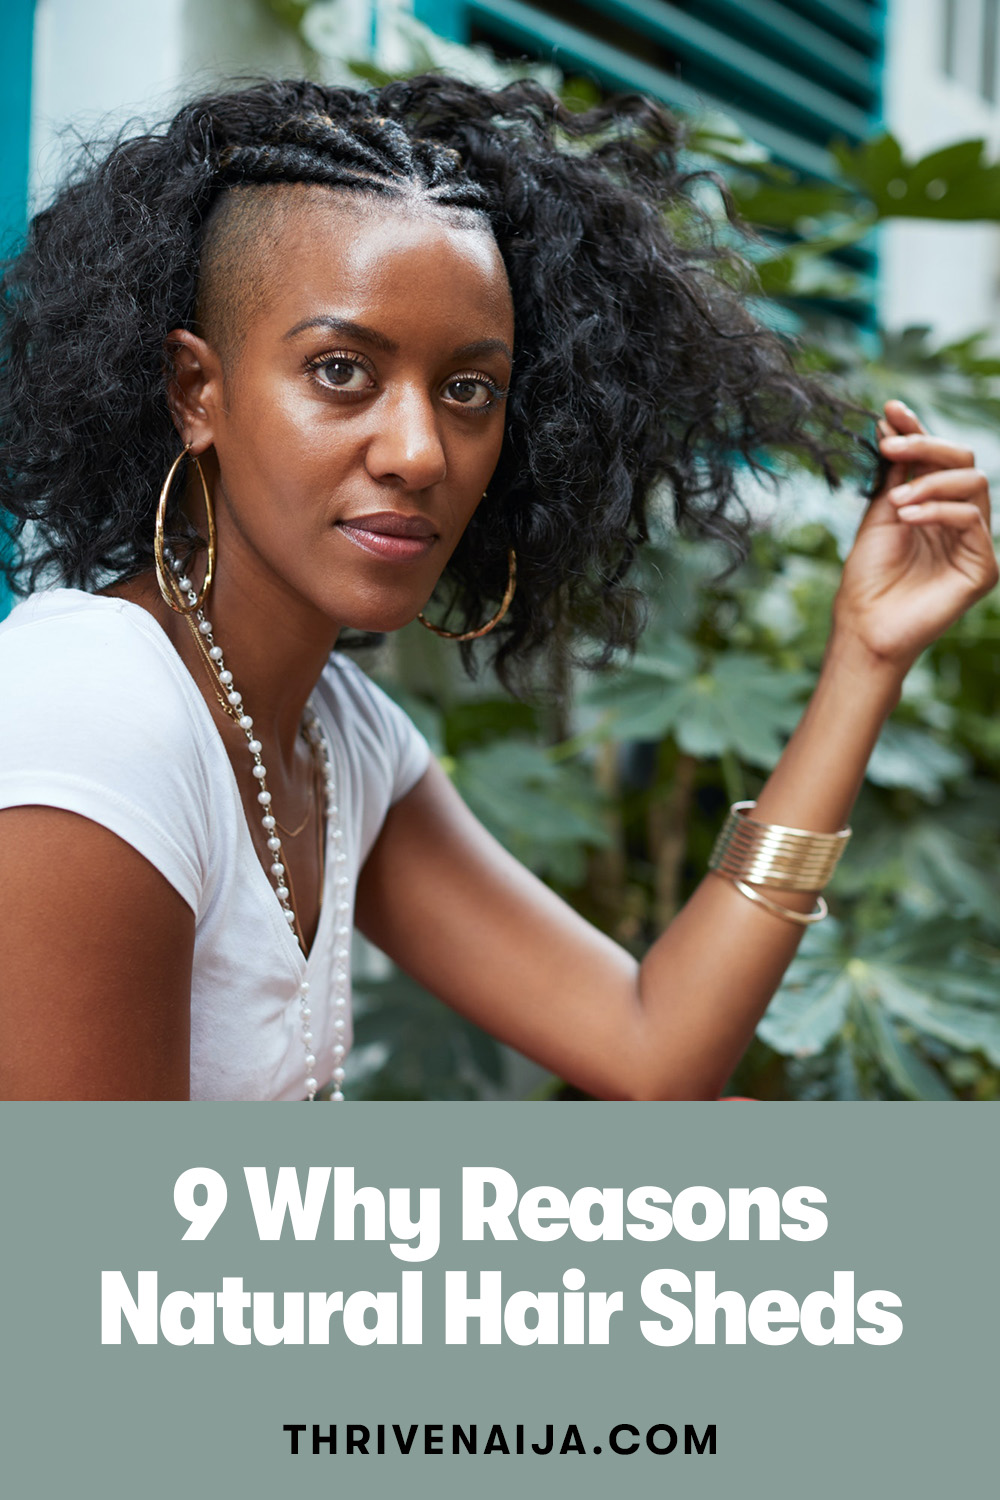 9 Why Reasons Natural Hair Sheds